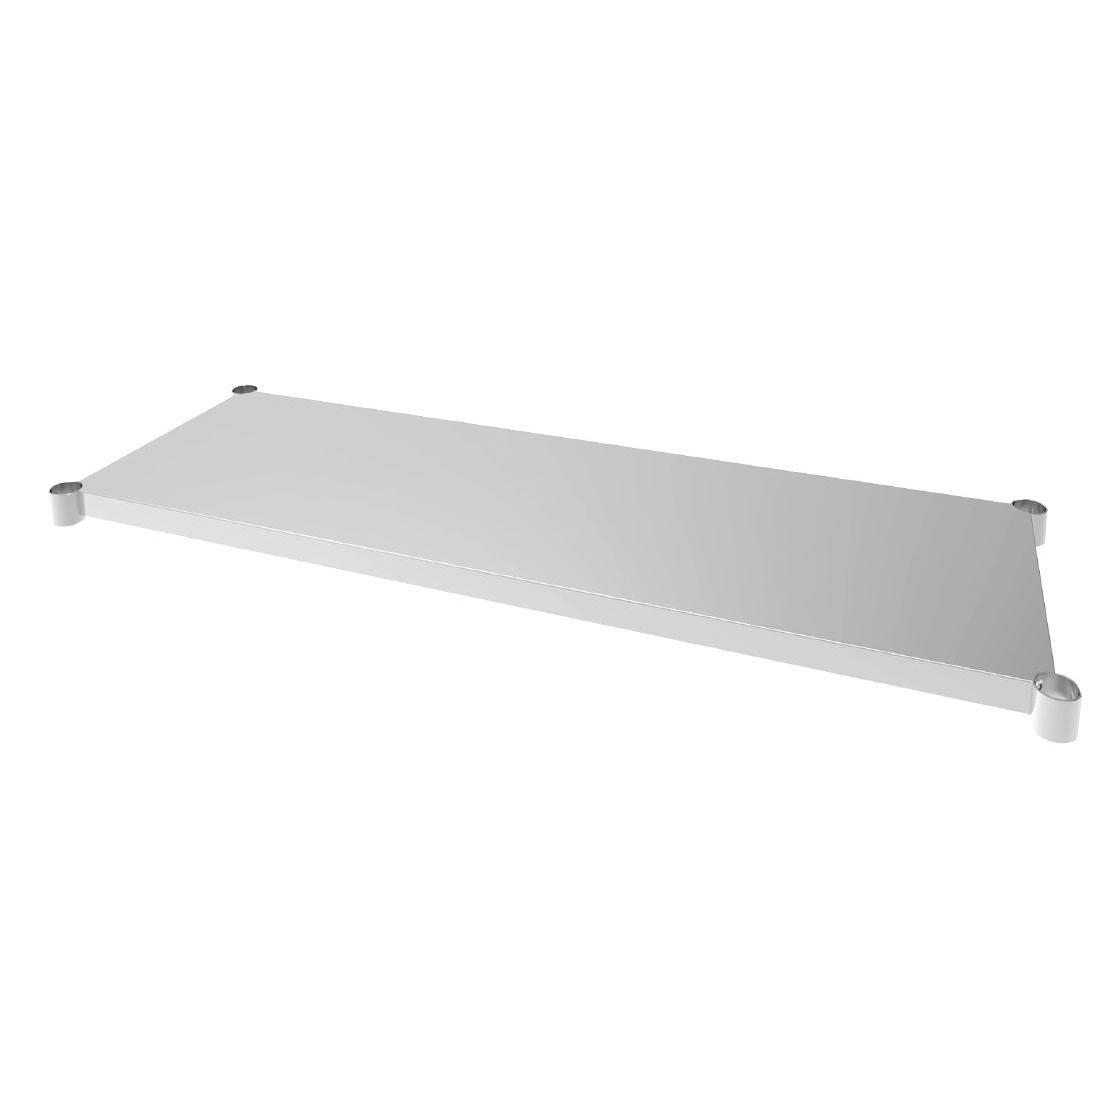 Vogue Stainless Steel Table Shelf 600x1500mm - Each - CP833